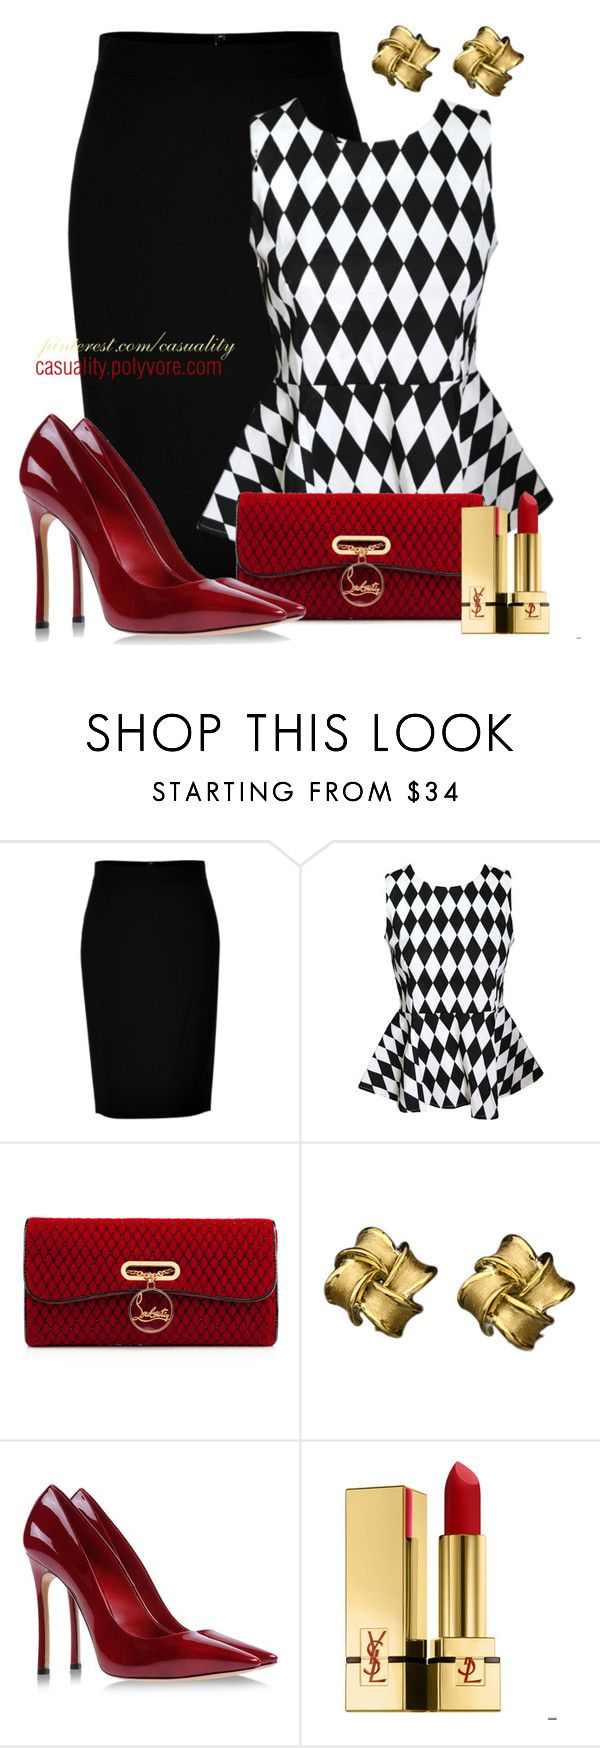 """""""Black & White Checkered Peplum"""" by casuality ❤ liked on Polyvore featuring DKNY, Christian Louboutin, Lynn Chase, Casadei and Yves Saint Laurent"""